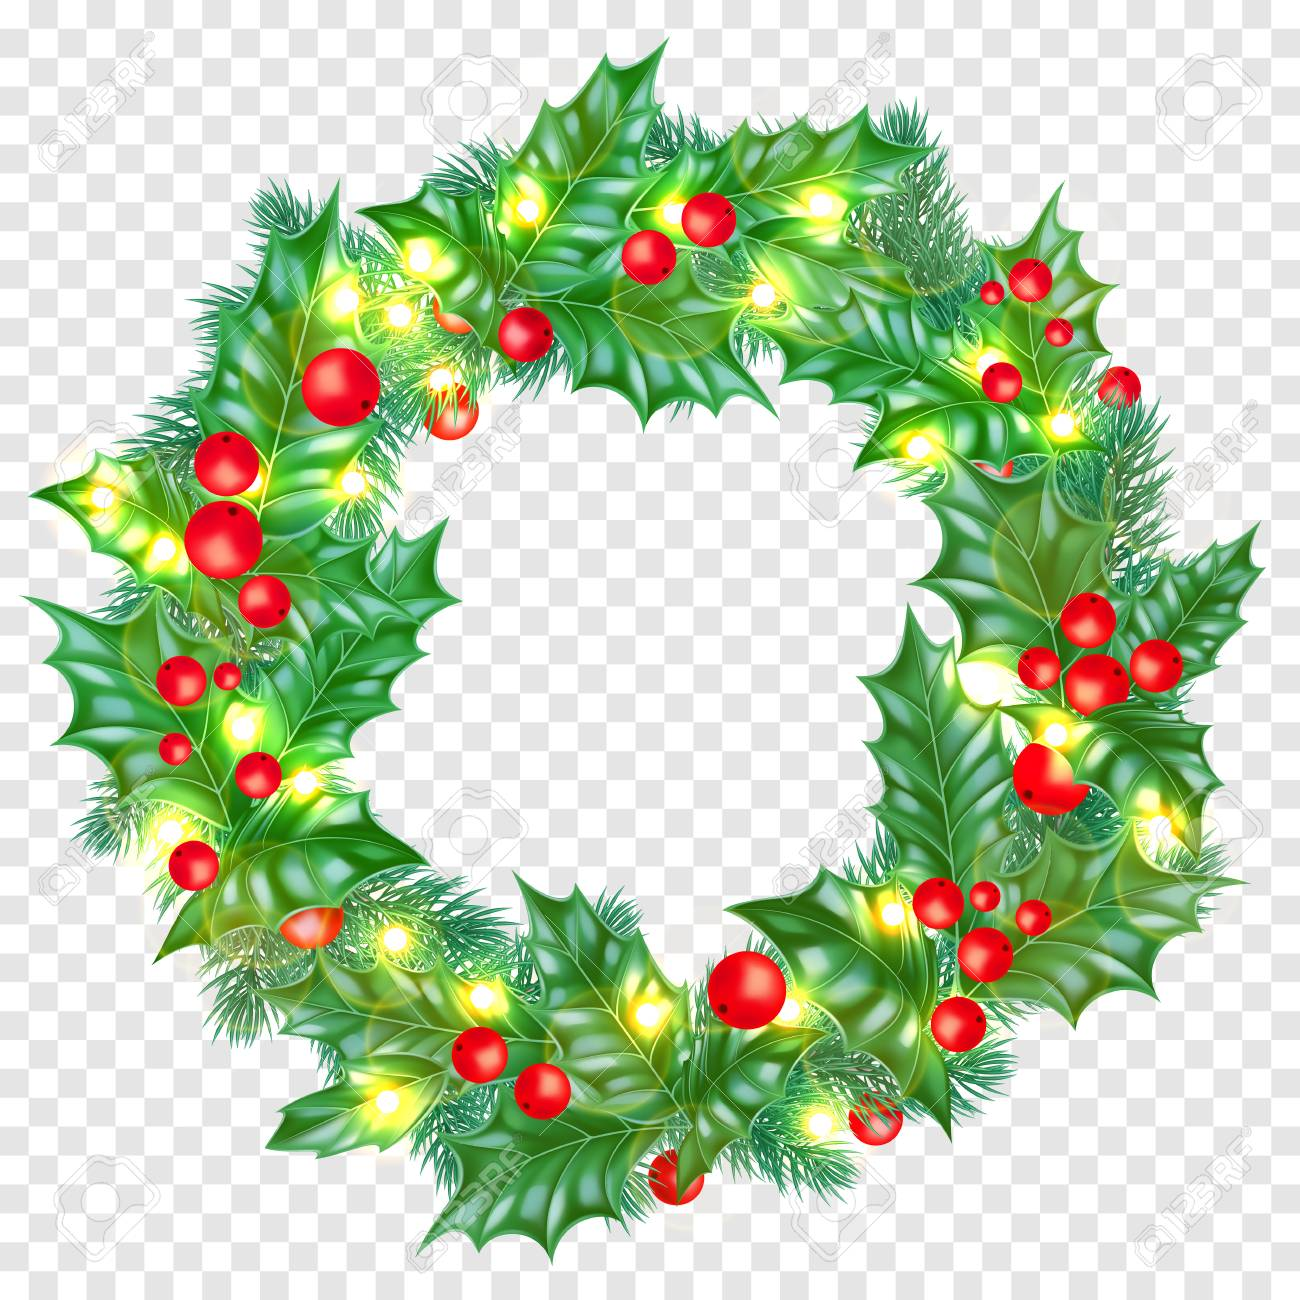 Christmas Greeting Card Template Background Of Holly Leaf Wreath